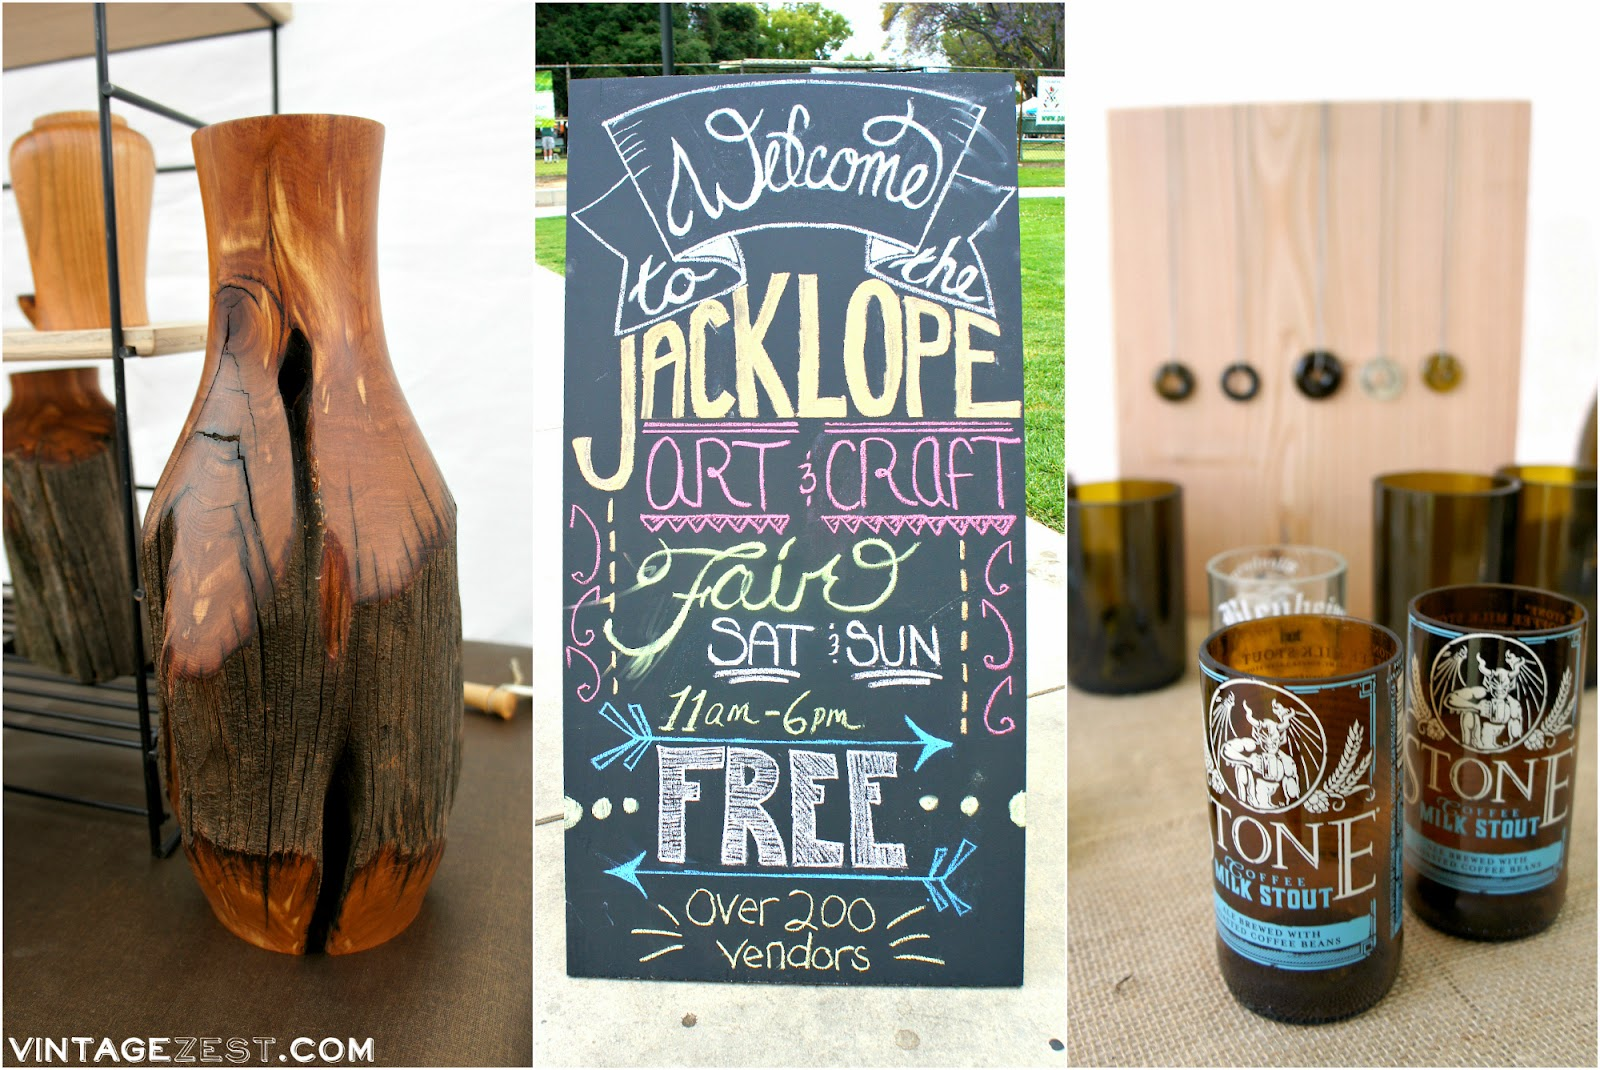 Jackalope Arts Wrap-up on Diane's Vintage Zest!